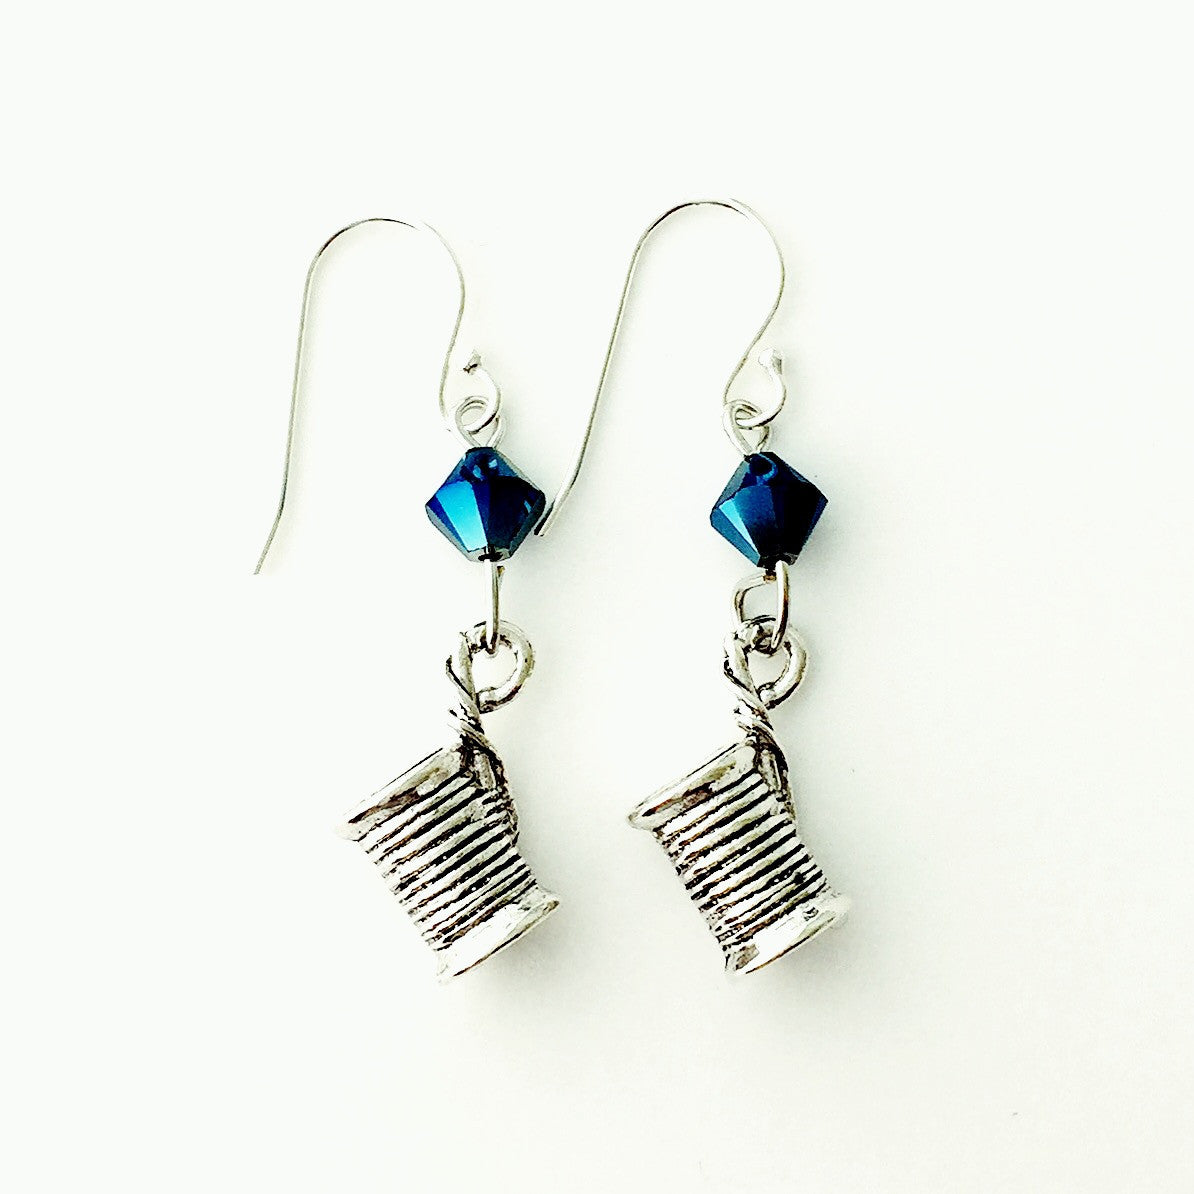 ____ Spool of Thread Silver Earrings with Blue Swarovski Crystals.